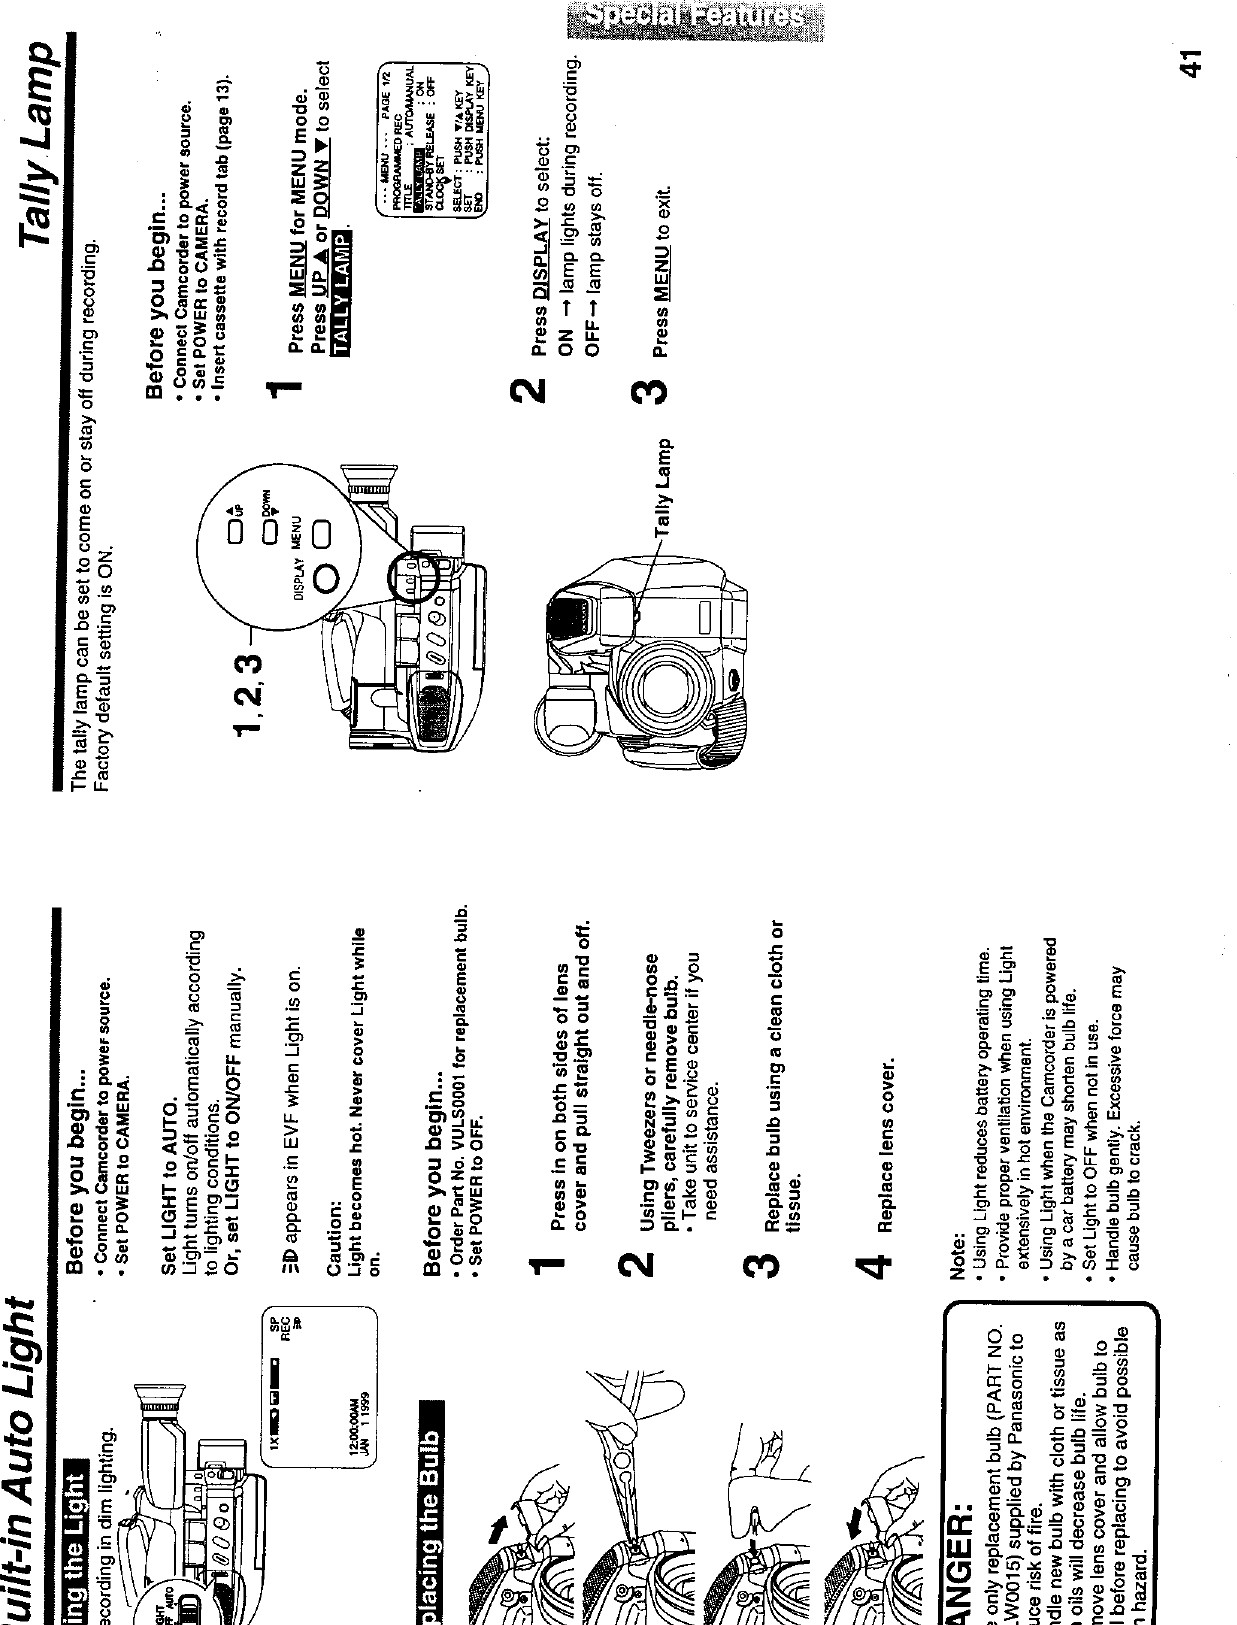 cone vase replacement of 5lu0034 user manual 16501 panasonic corporation of north america inside page 20 of 5lu0034 user manual 16501 panasonic corporation of north america